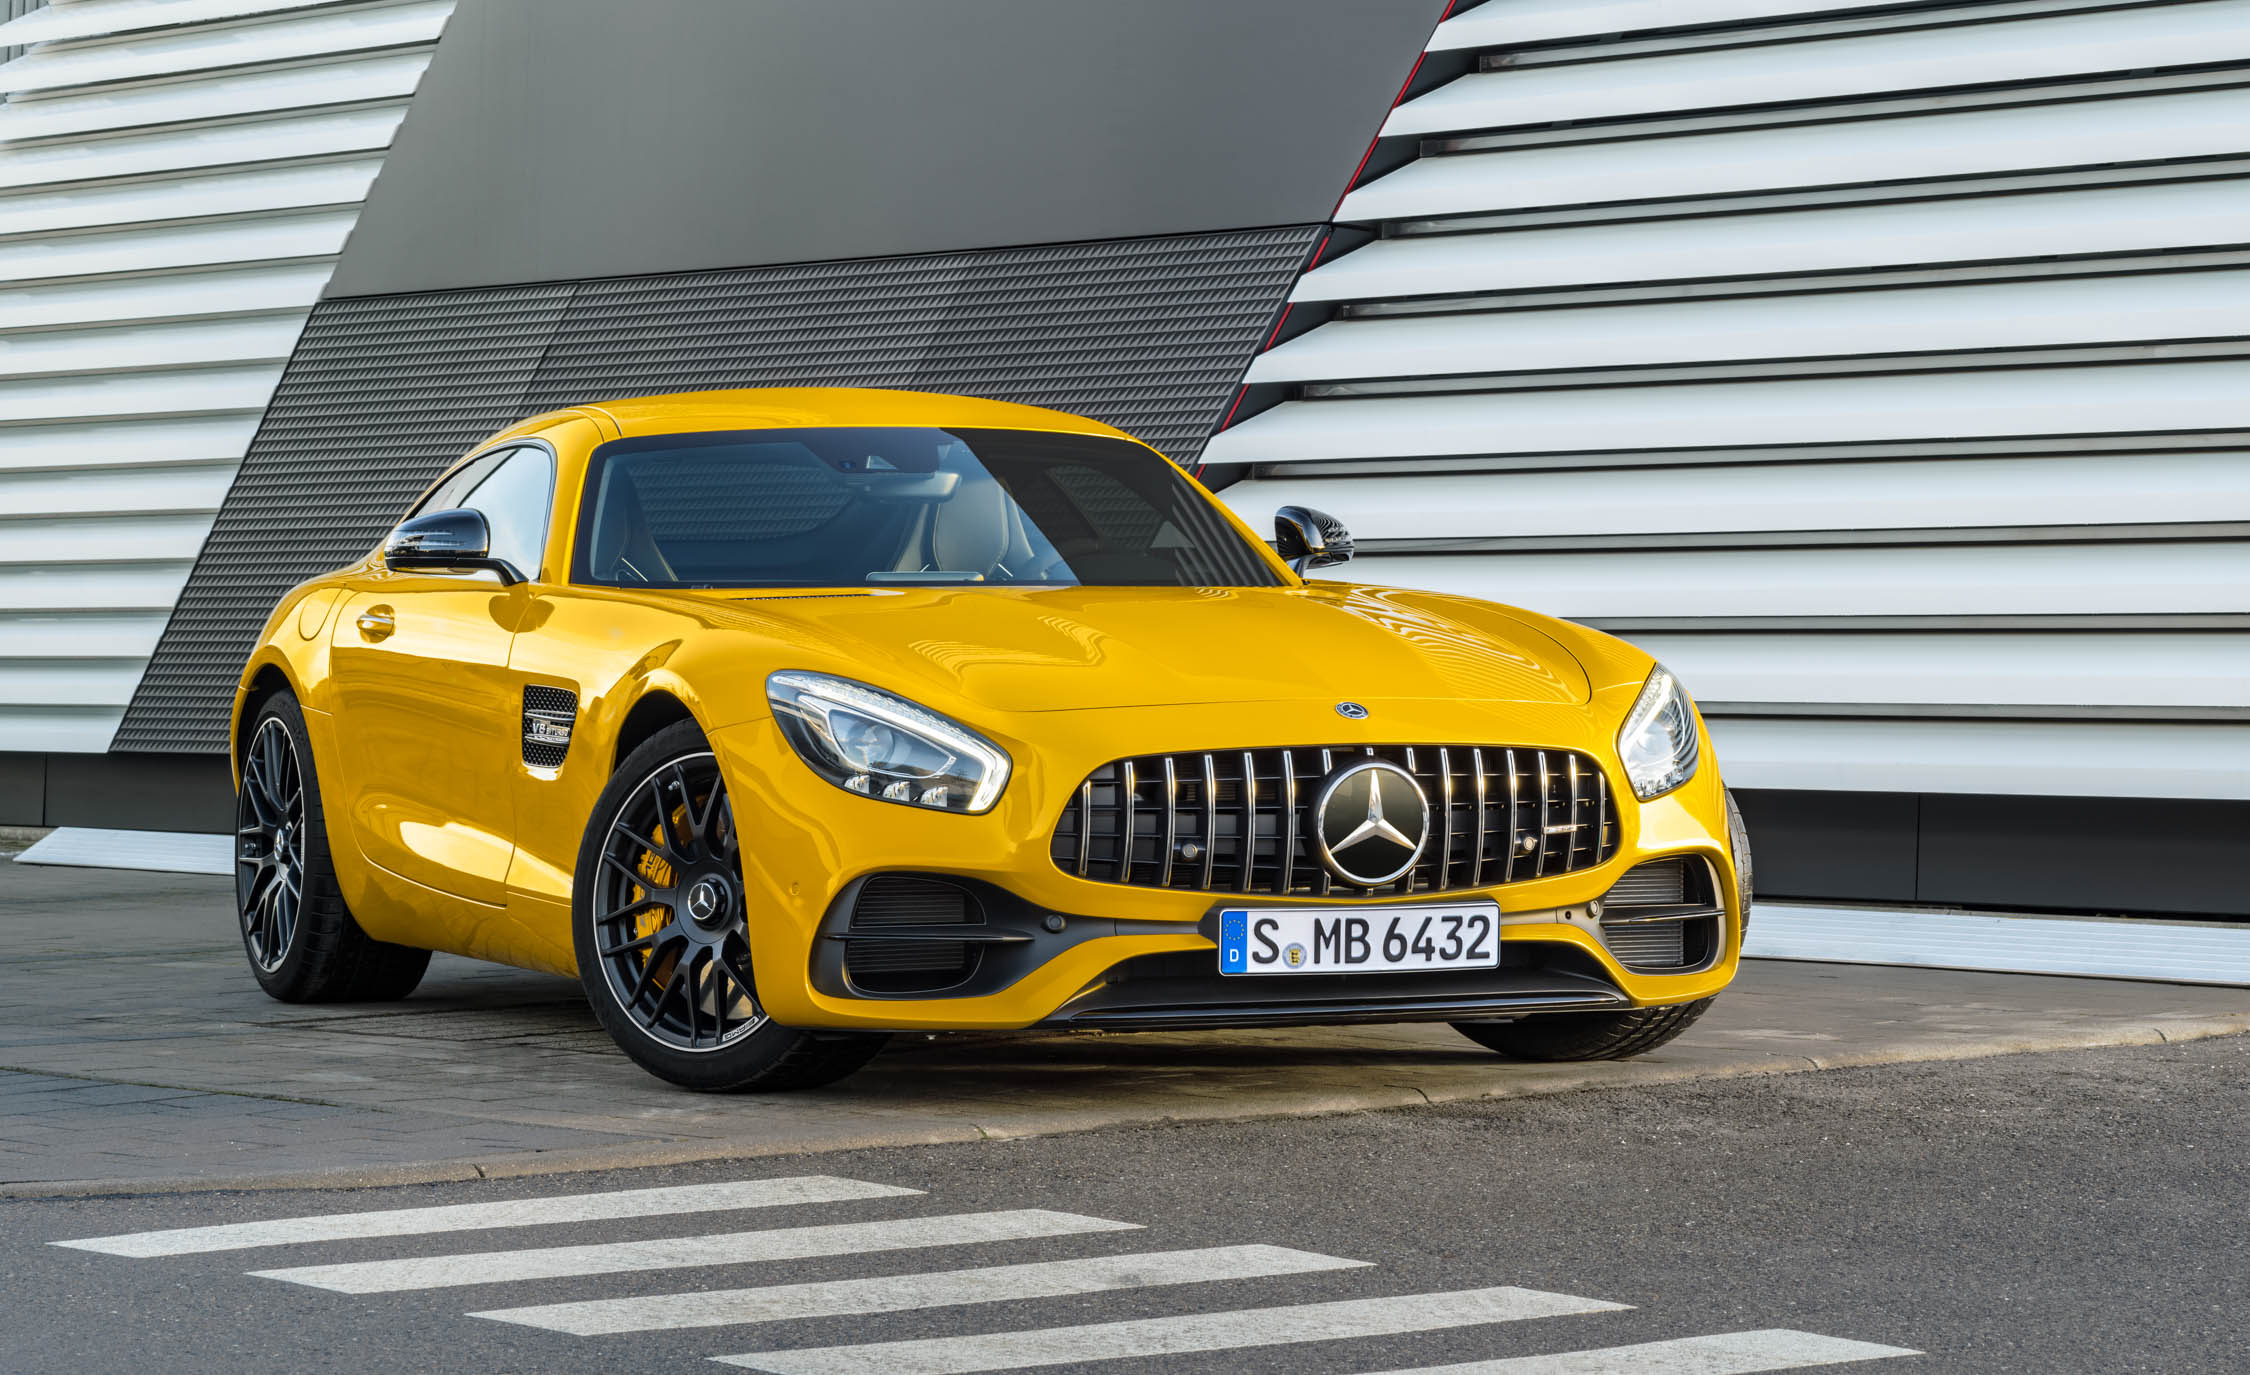 2018 Mercedes Amg Gt S Exterior Front And Side (View 1 of 23)